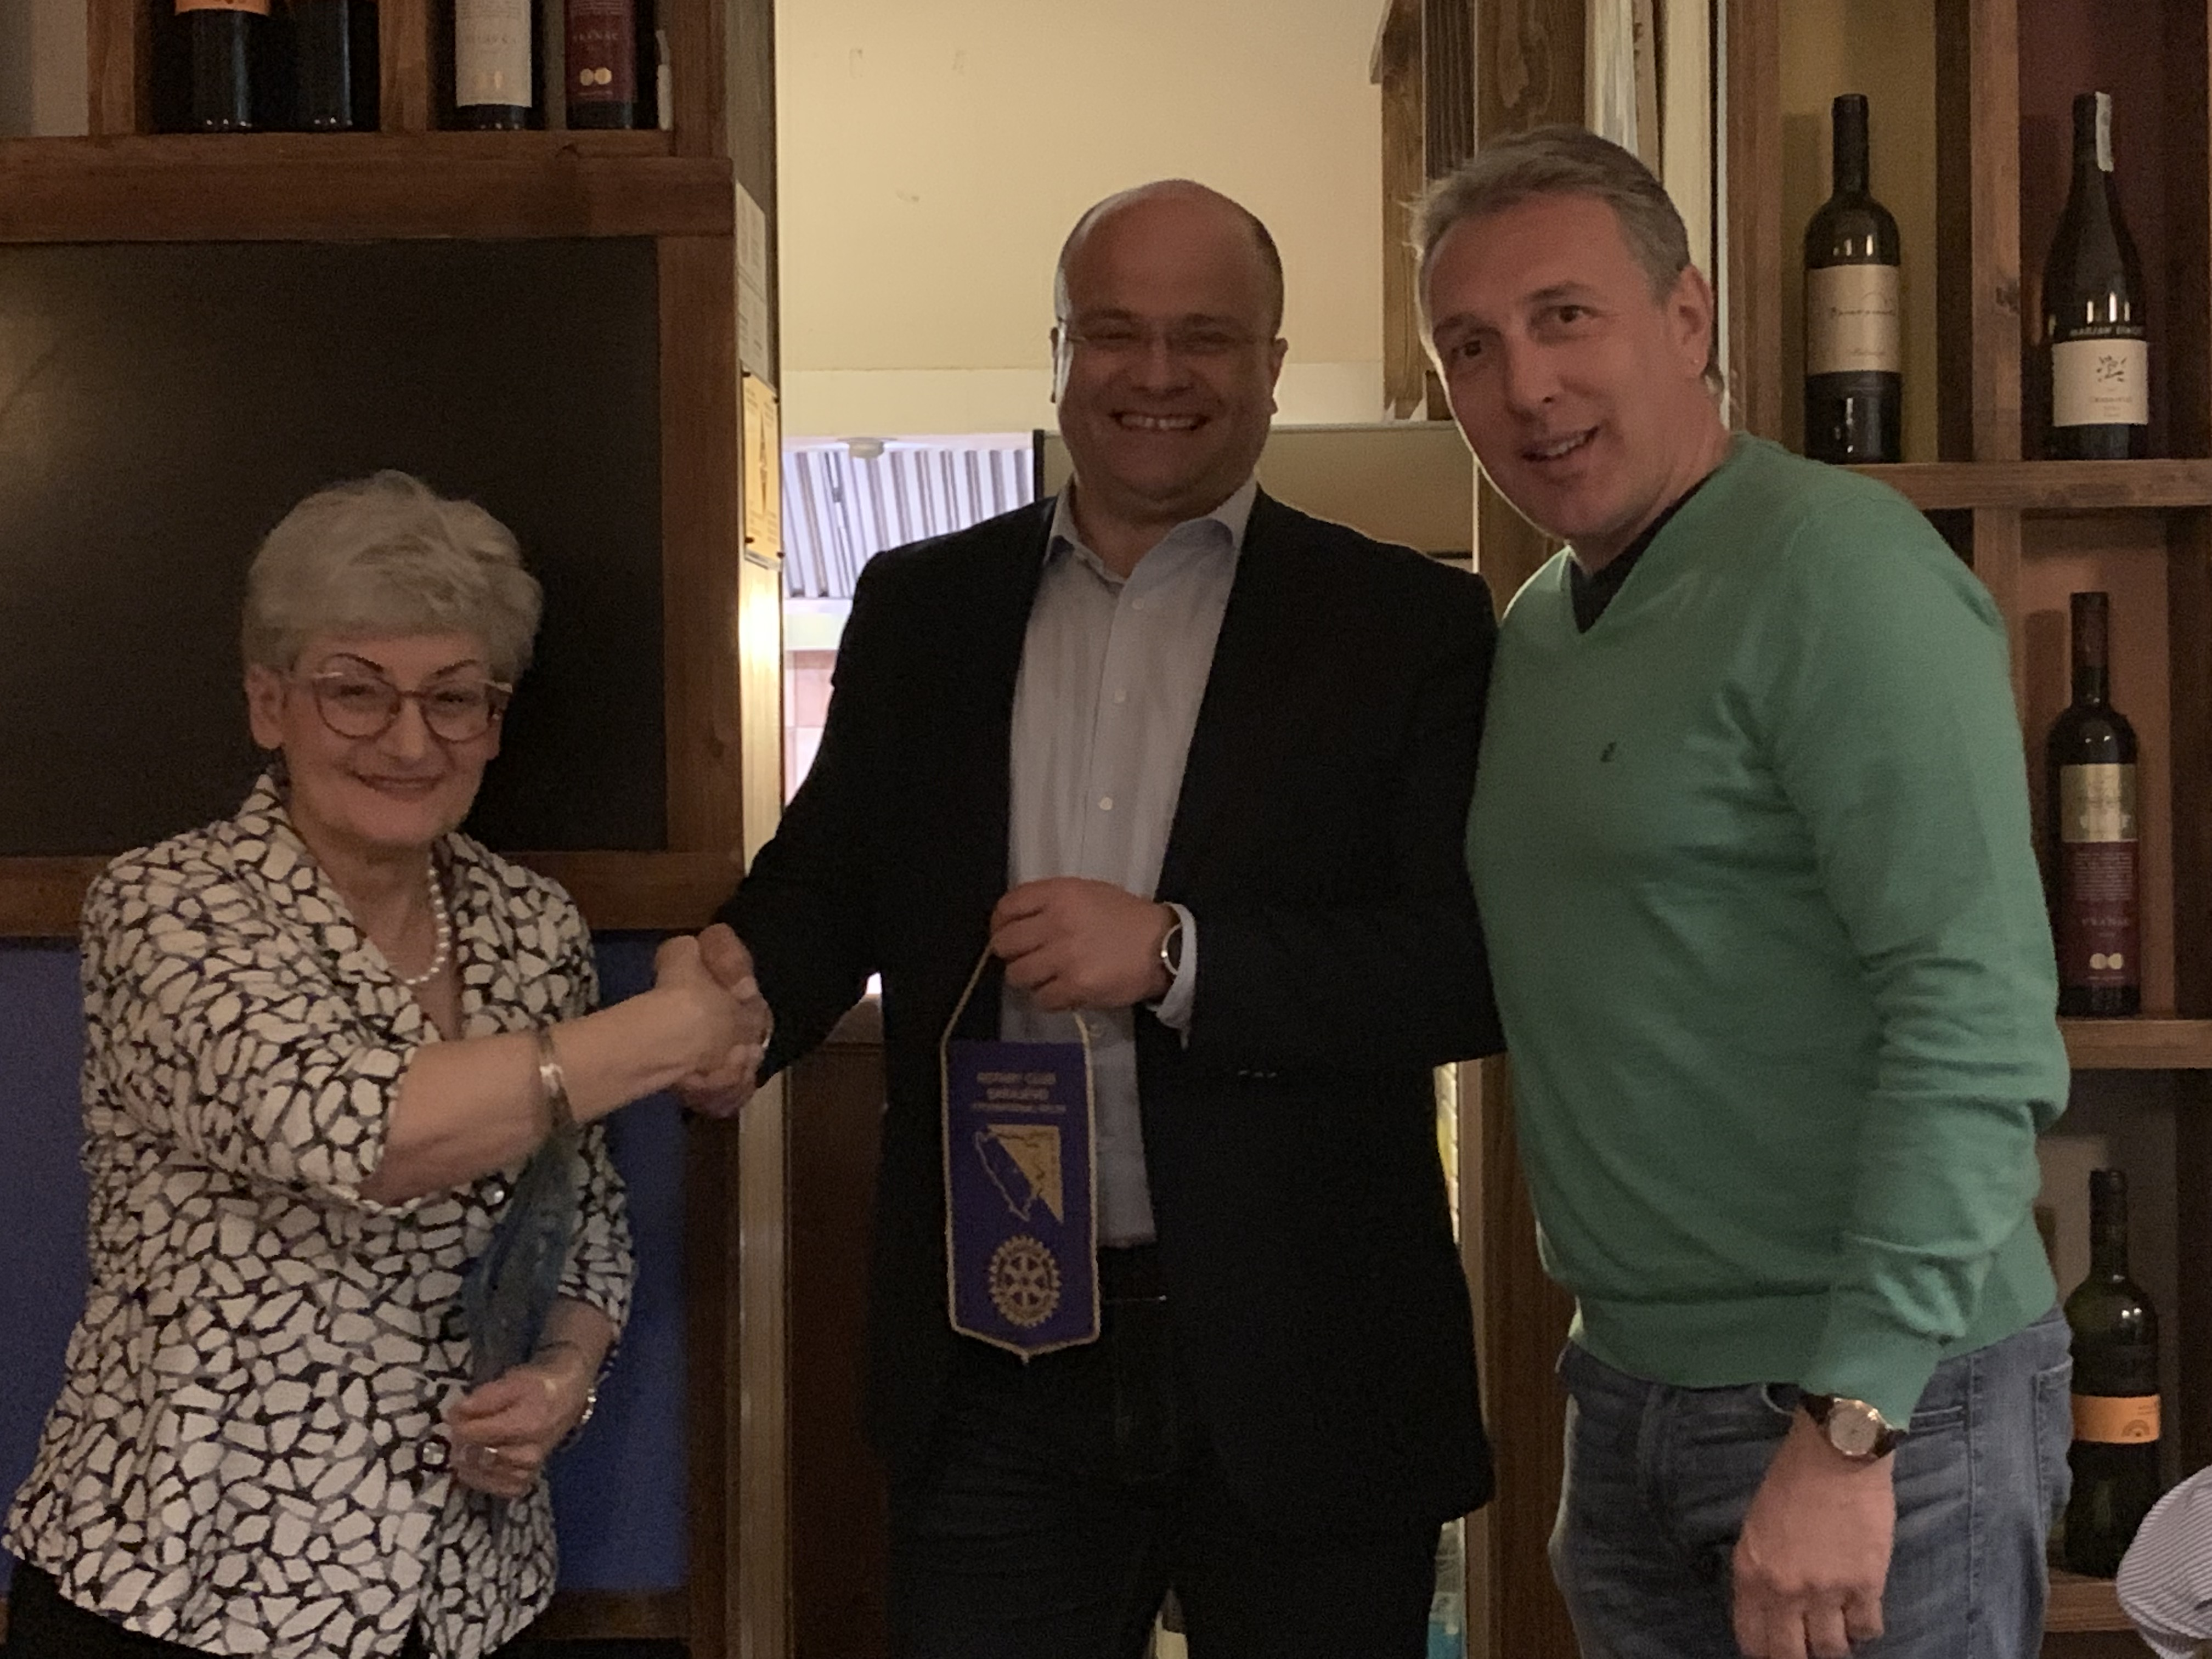 We are happy to welcome three new members to our club. Dubravka Piotrovski, Benjamina Londrc and Admir Drinic are very enthusiastic, dedicated, and passionate tobreathe new life into our club.